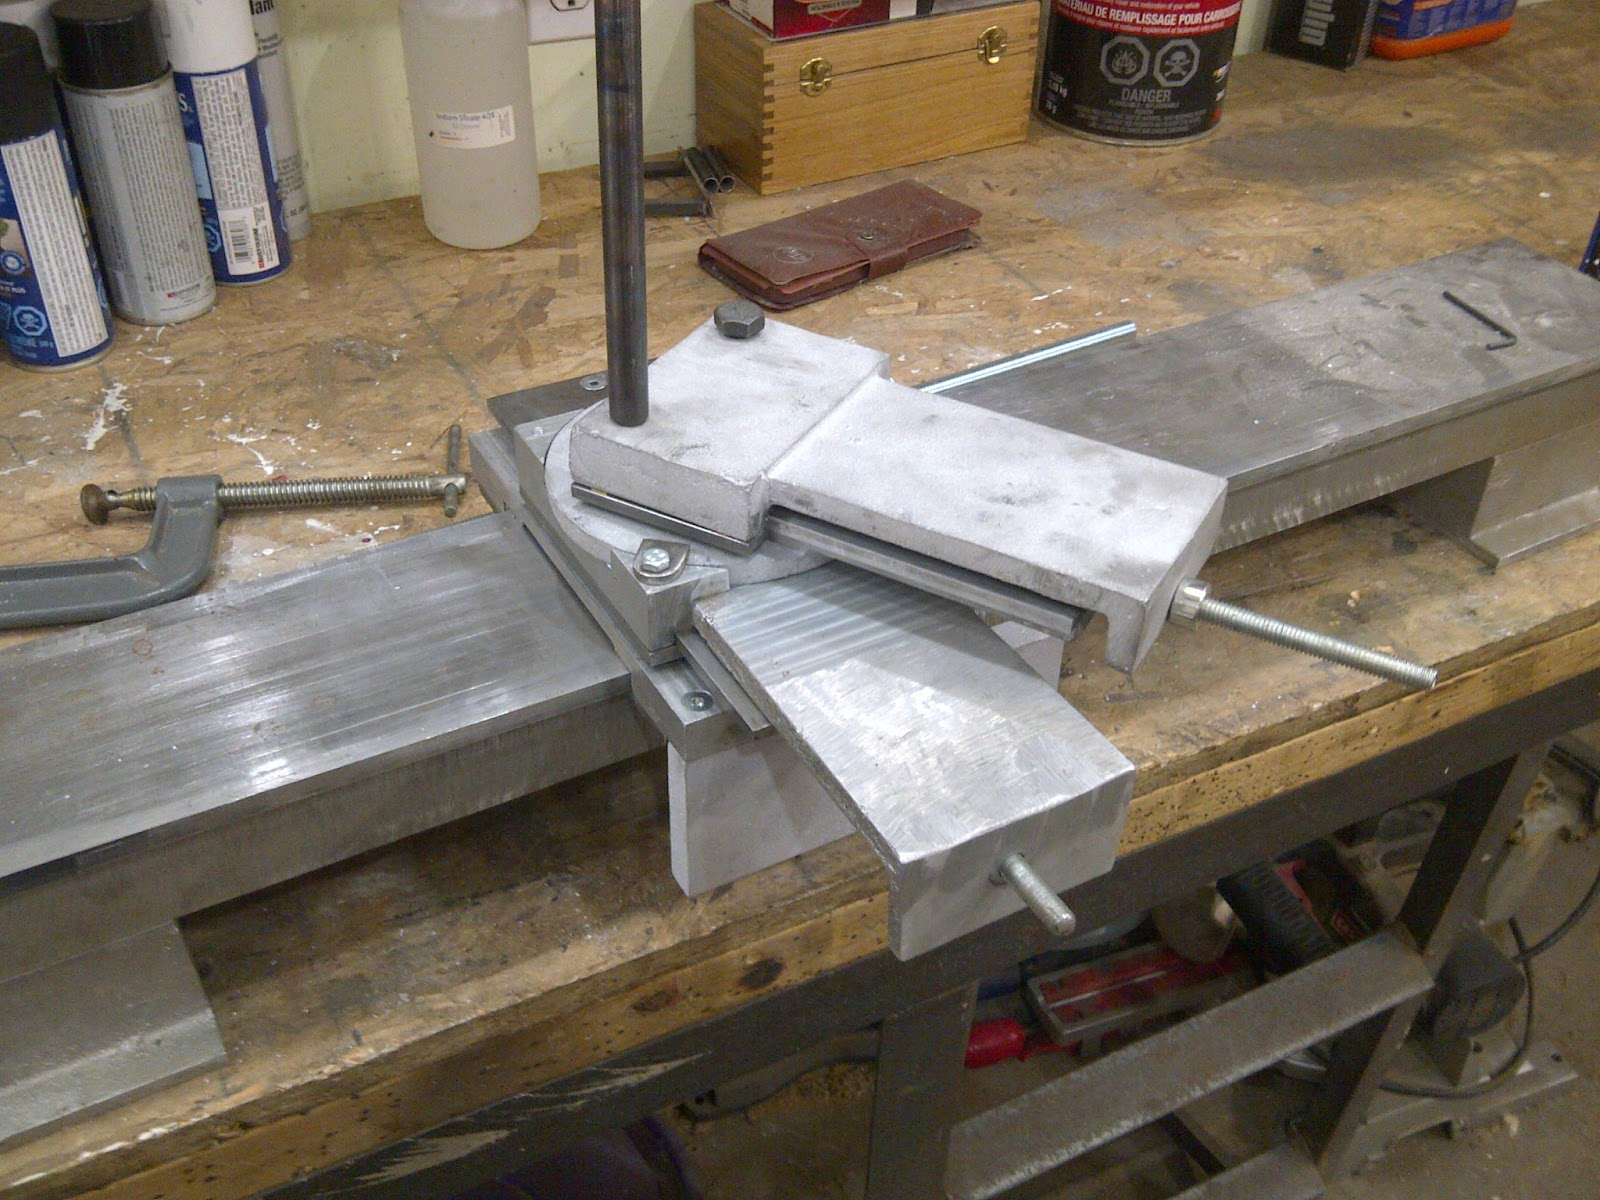 Metal Projects To Build : Another day project building my own gingery metal